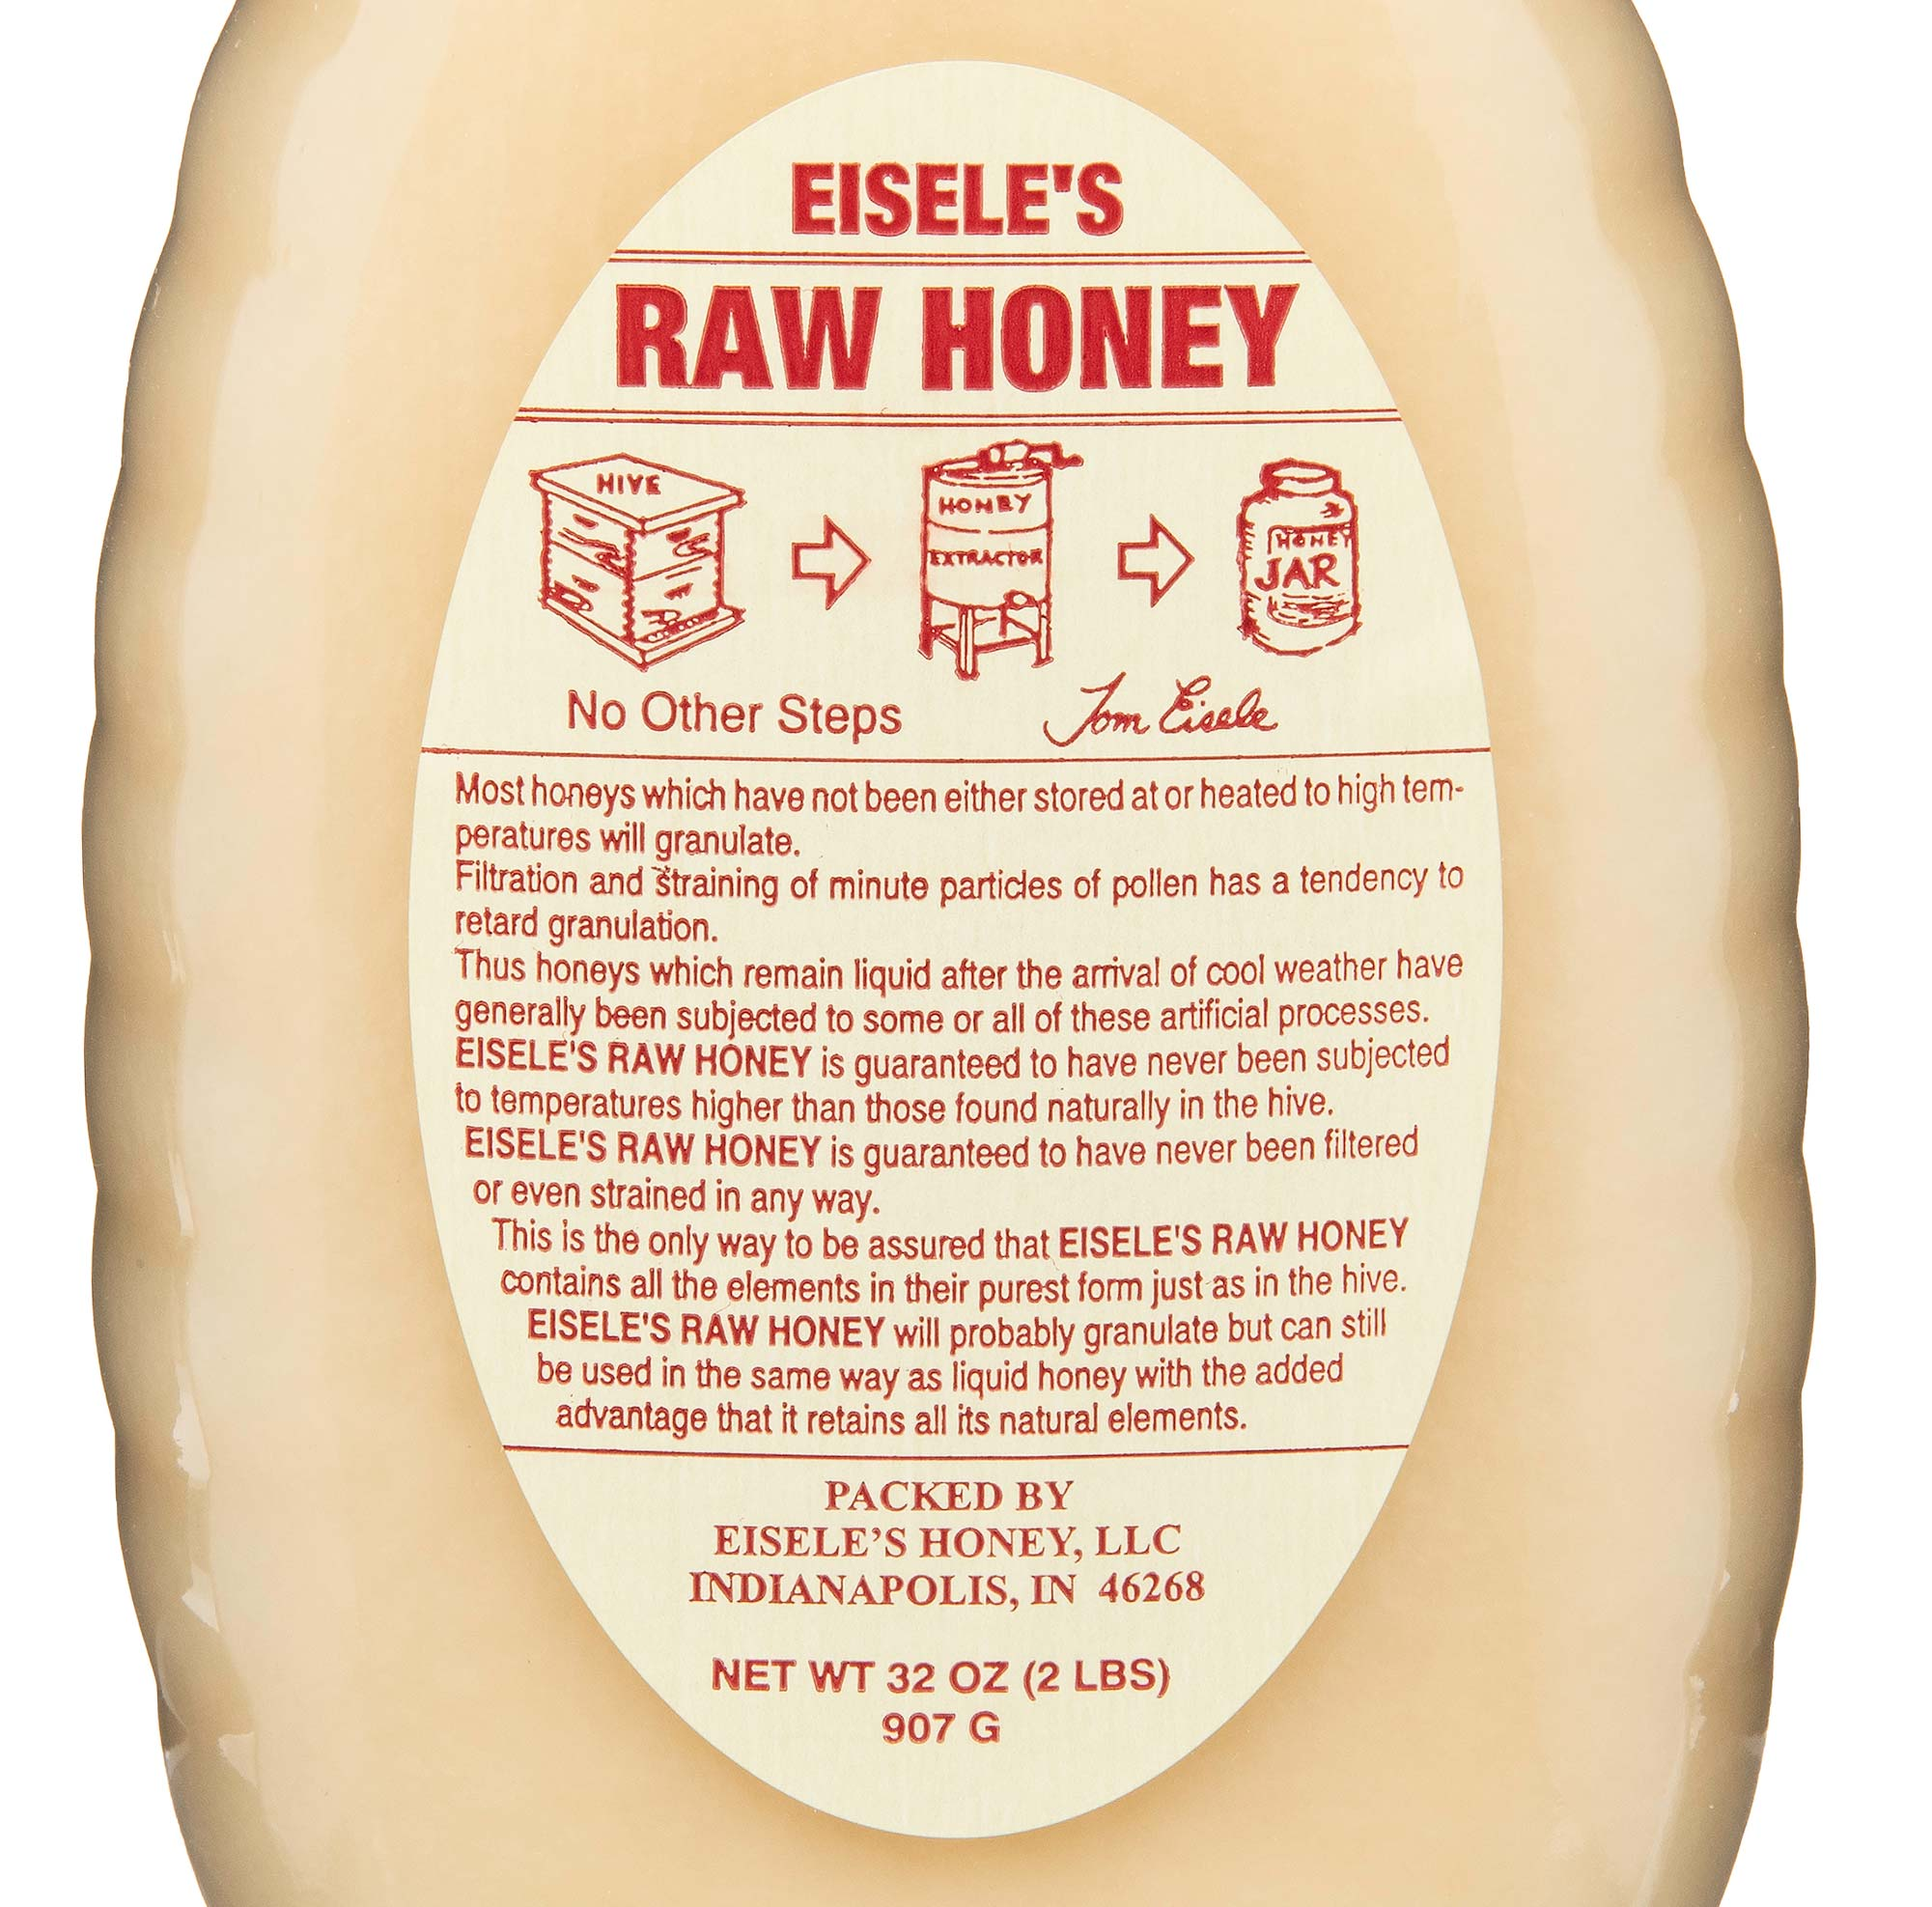 raw-honey-label.jpg